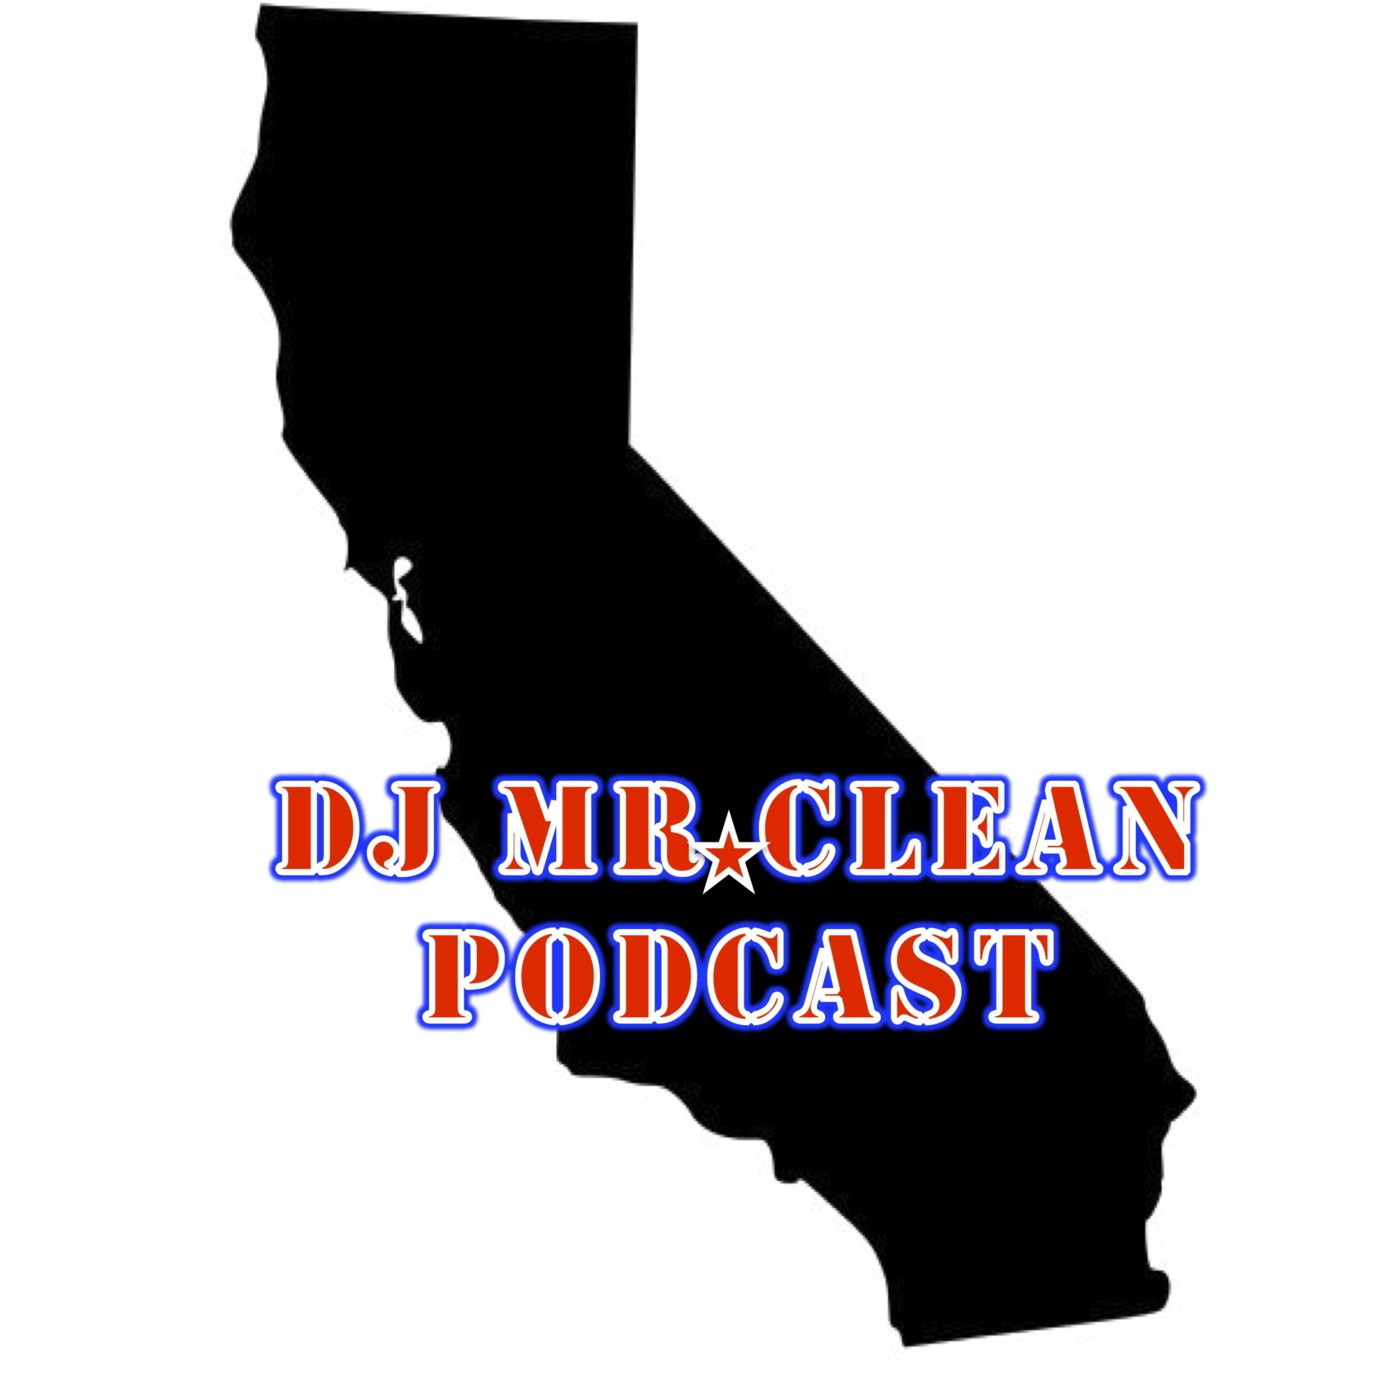 DJ MR.CLEAN Podcast